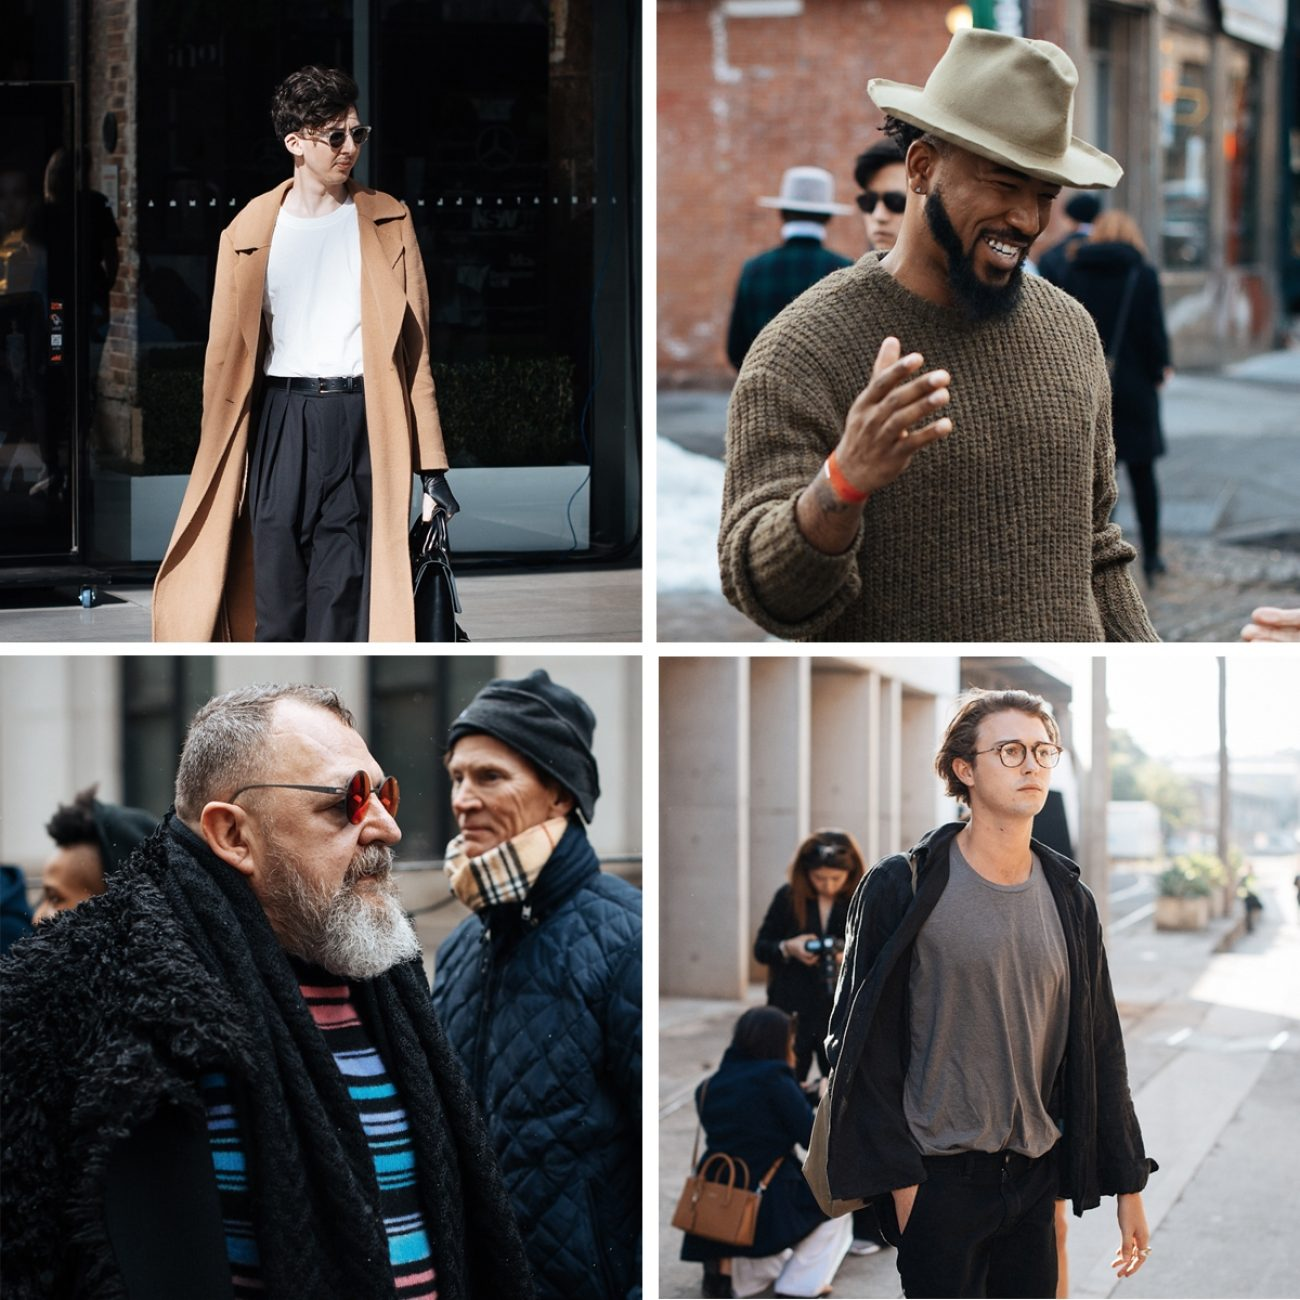 'Men in This Town' Founder Has Taken His Vision of Street Style Off-Screen